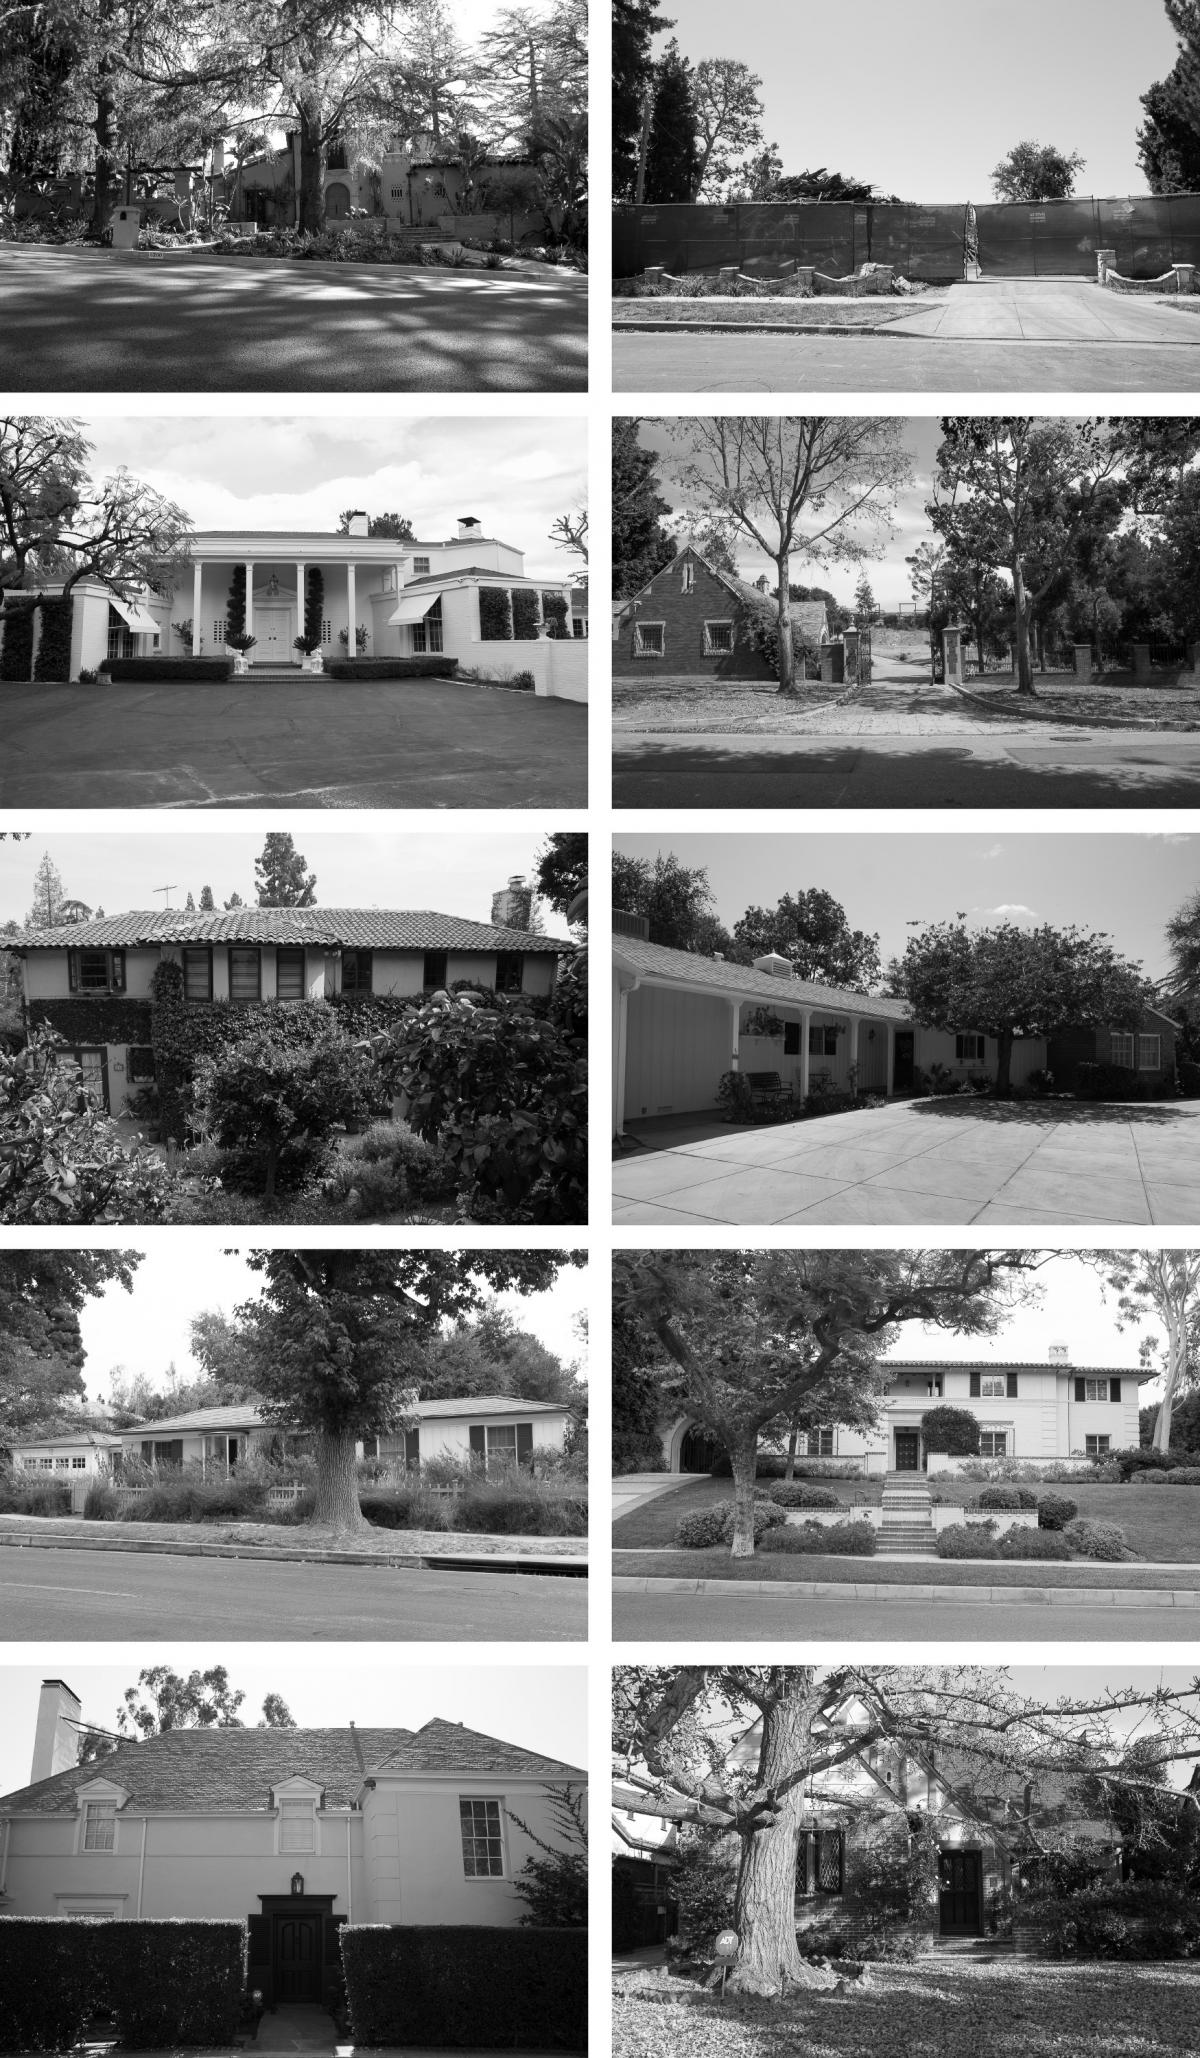 The variety of home exteriors designed by Williams in the Los Angeles area demonstrate the wide range of architectural styles he employed. Williams designed nearly 3,000 structures in his lifetime, about 2,000 of which are in LA alone.